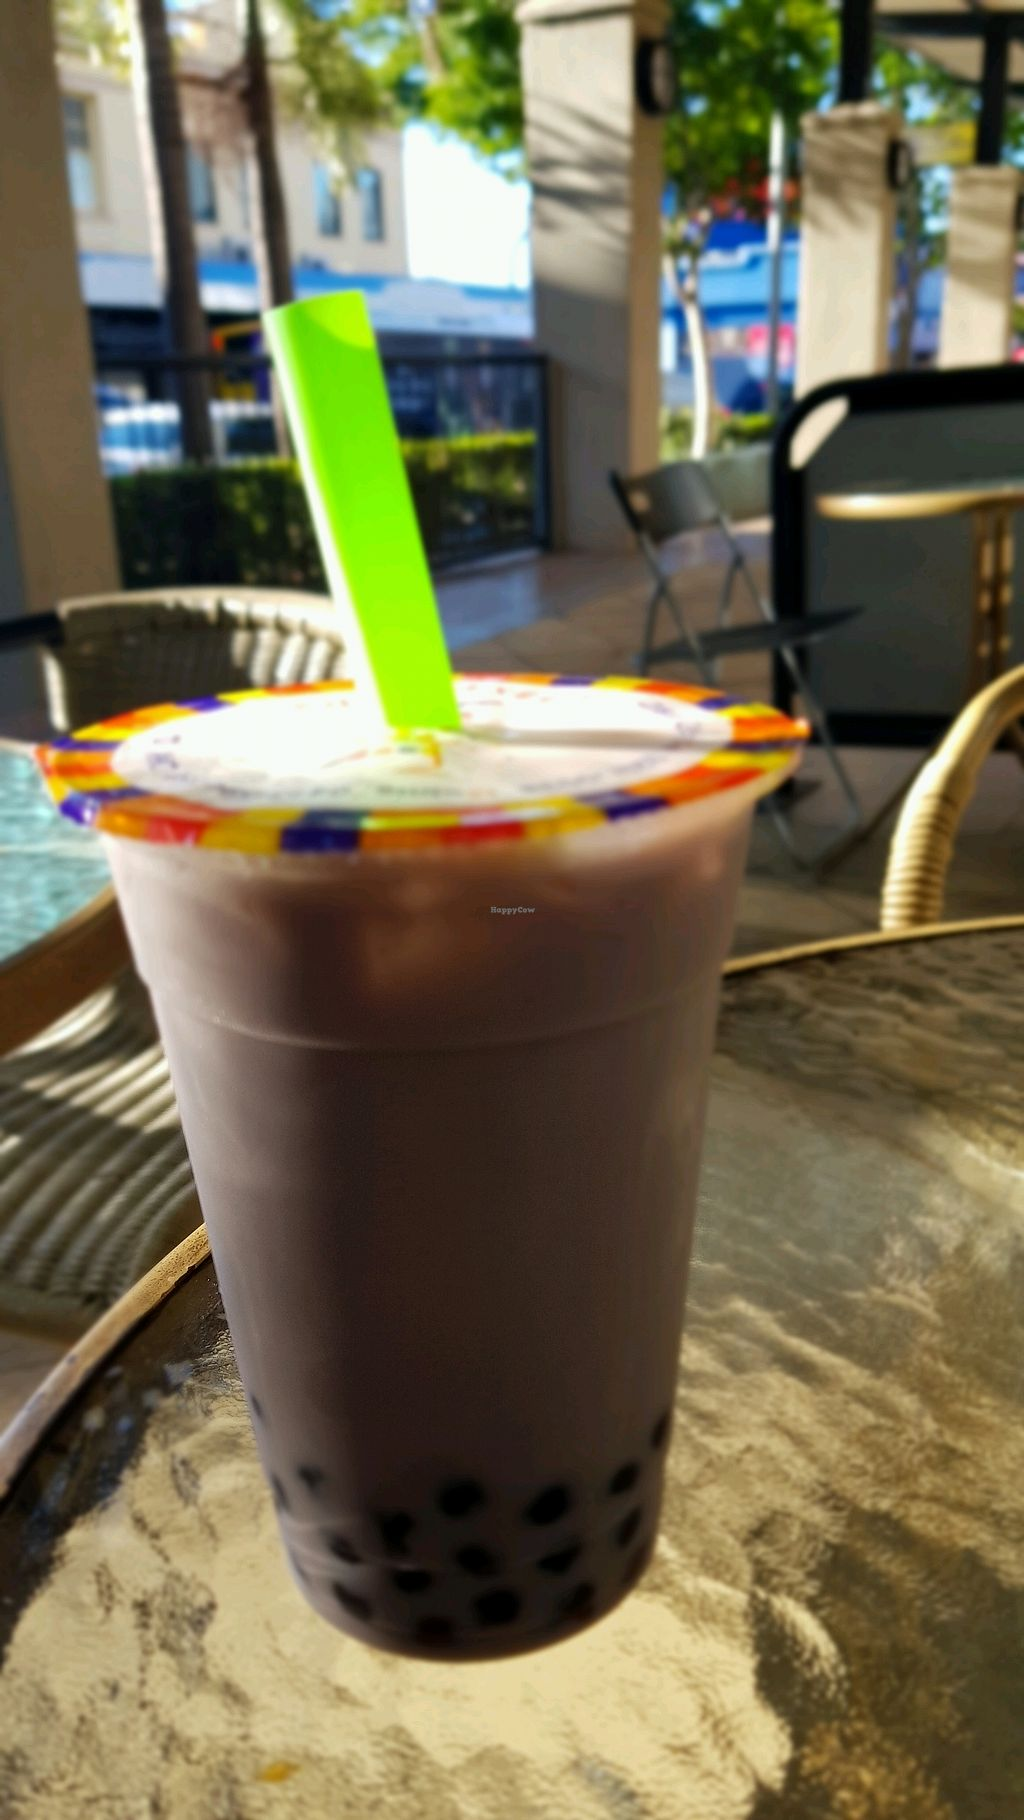 """Photo of Tea Master  by <a href=""""/members/profile/DadaShanti"""">DadaShanti</a> <br/>Taro bubble tea <br/> May 10, 2018  - <a href='/contact/abuse/image/17221/397684'>Report</a>"""